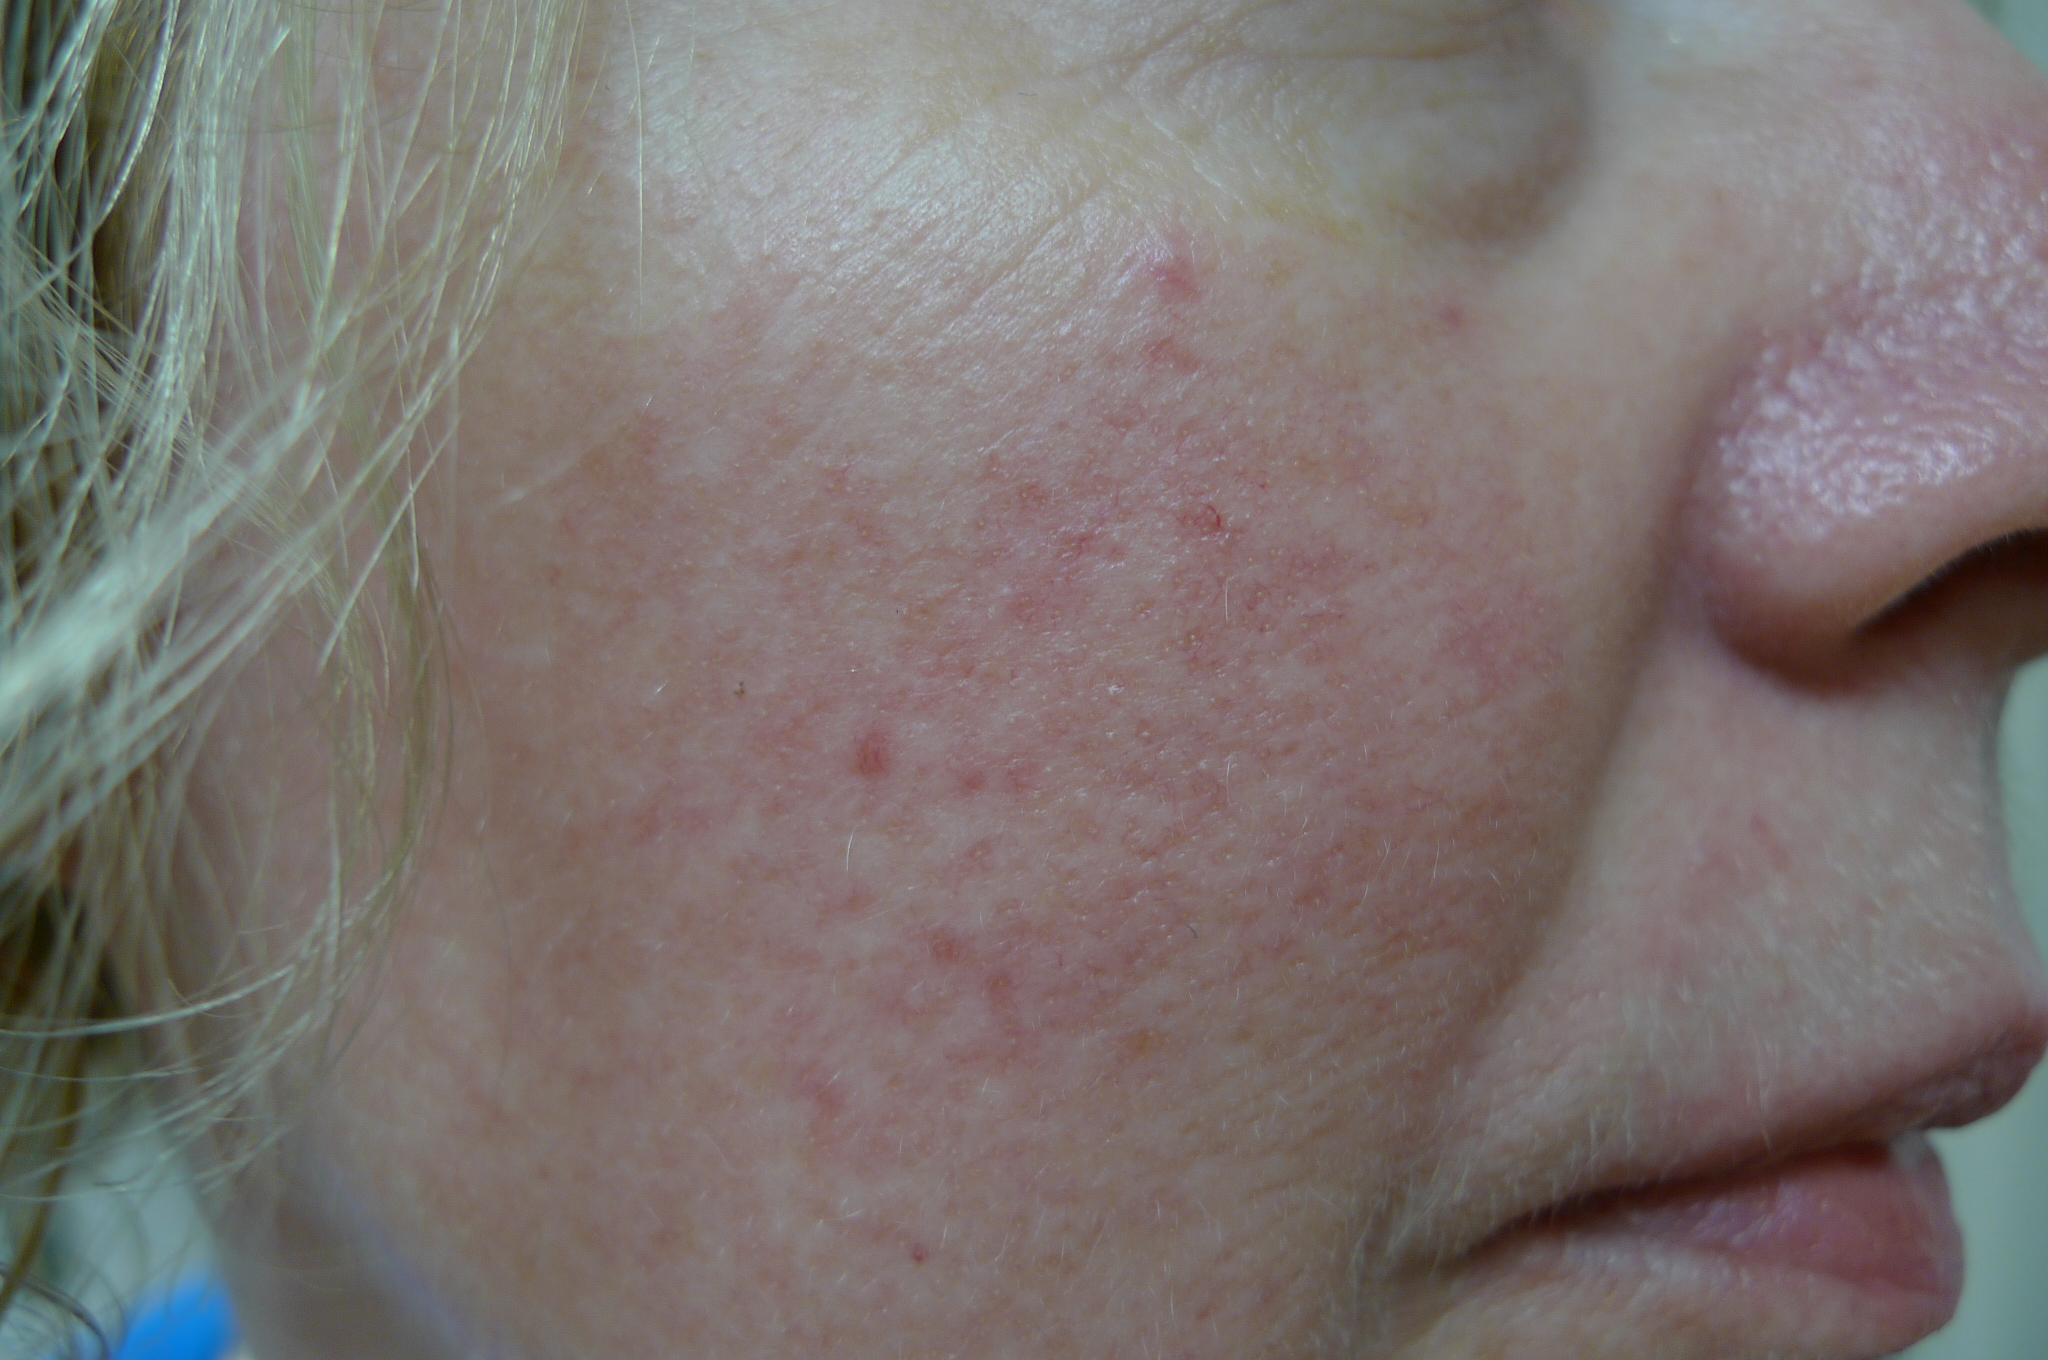 rosacea Image reproduced with permission of Dr Davin Lim